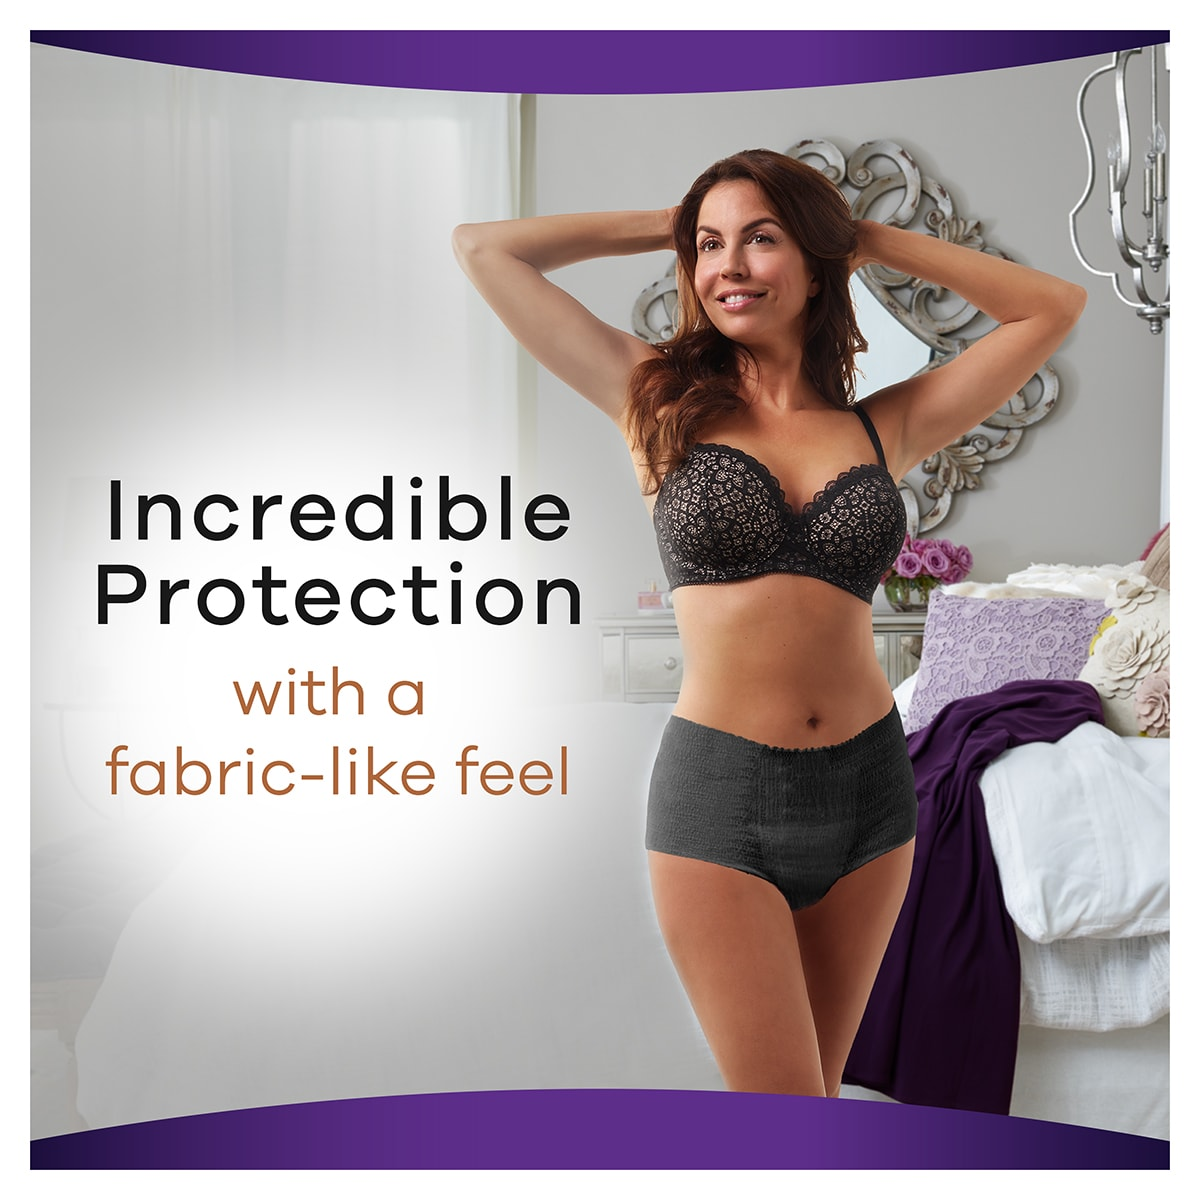 Always Discreet Boutique Pants Incredible Protection 1200x1200